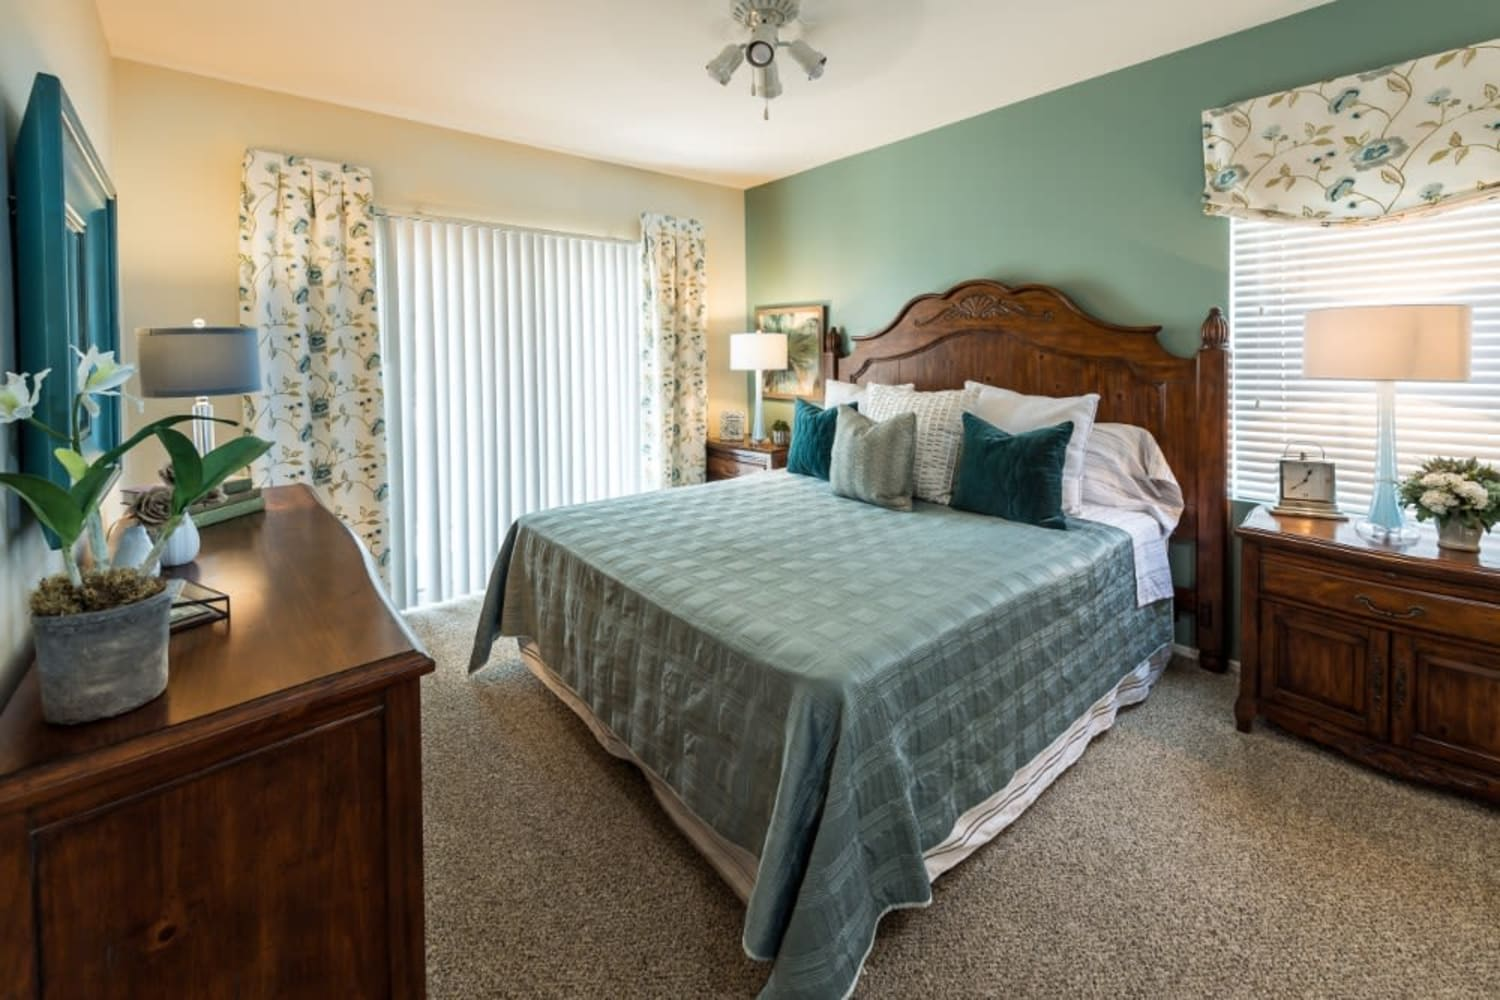 Bedroom at The Village on 5th in Rancho Cucamonga, California